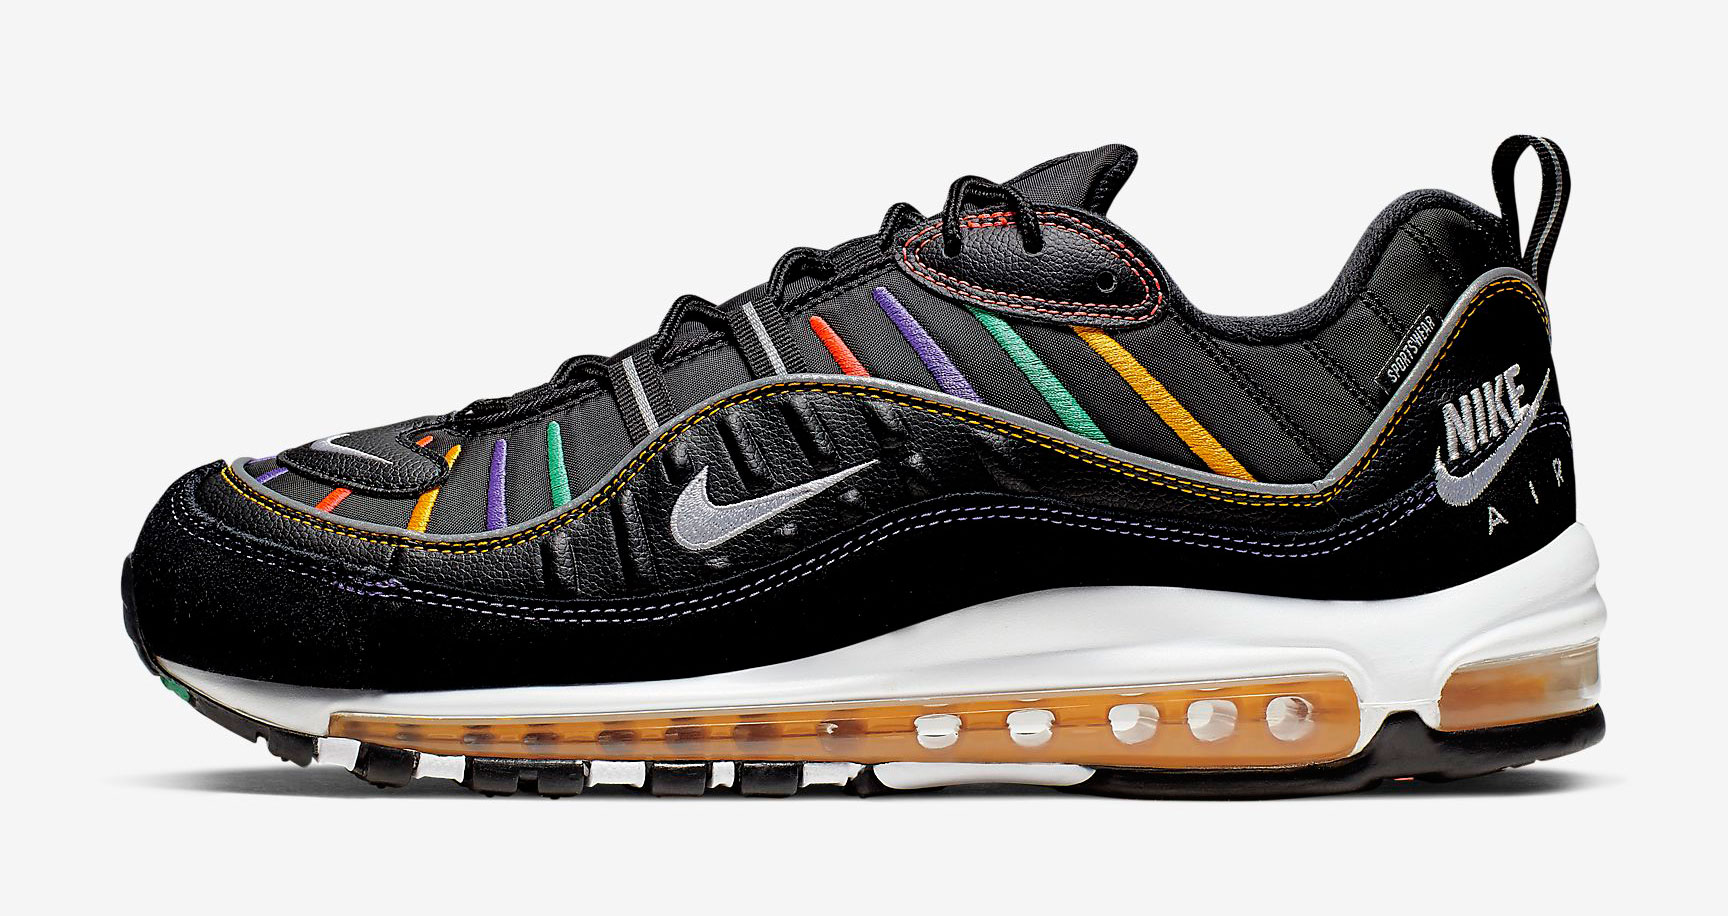 nike-air-max-98-game-changer-release-date